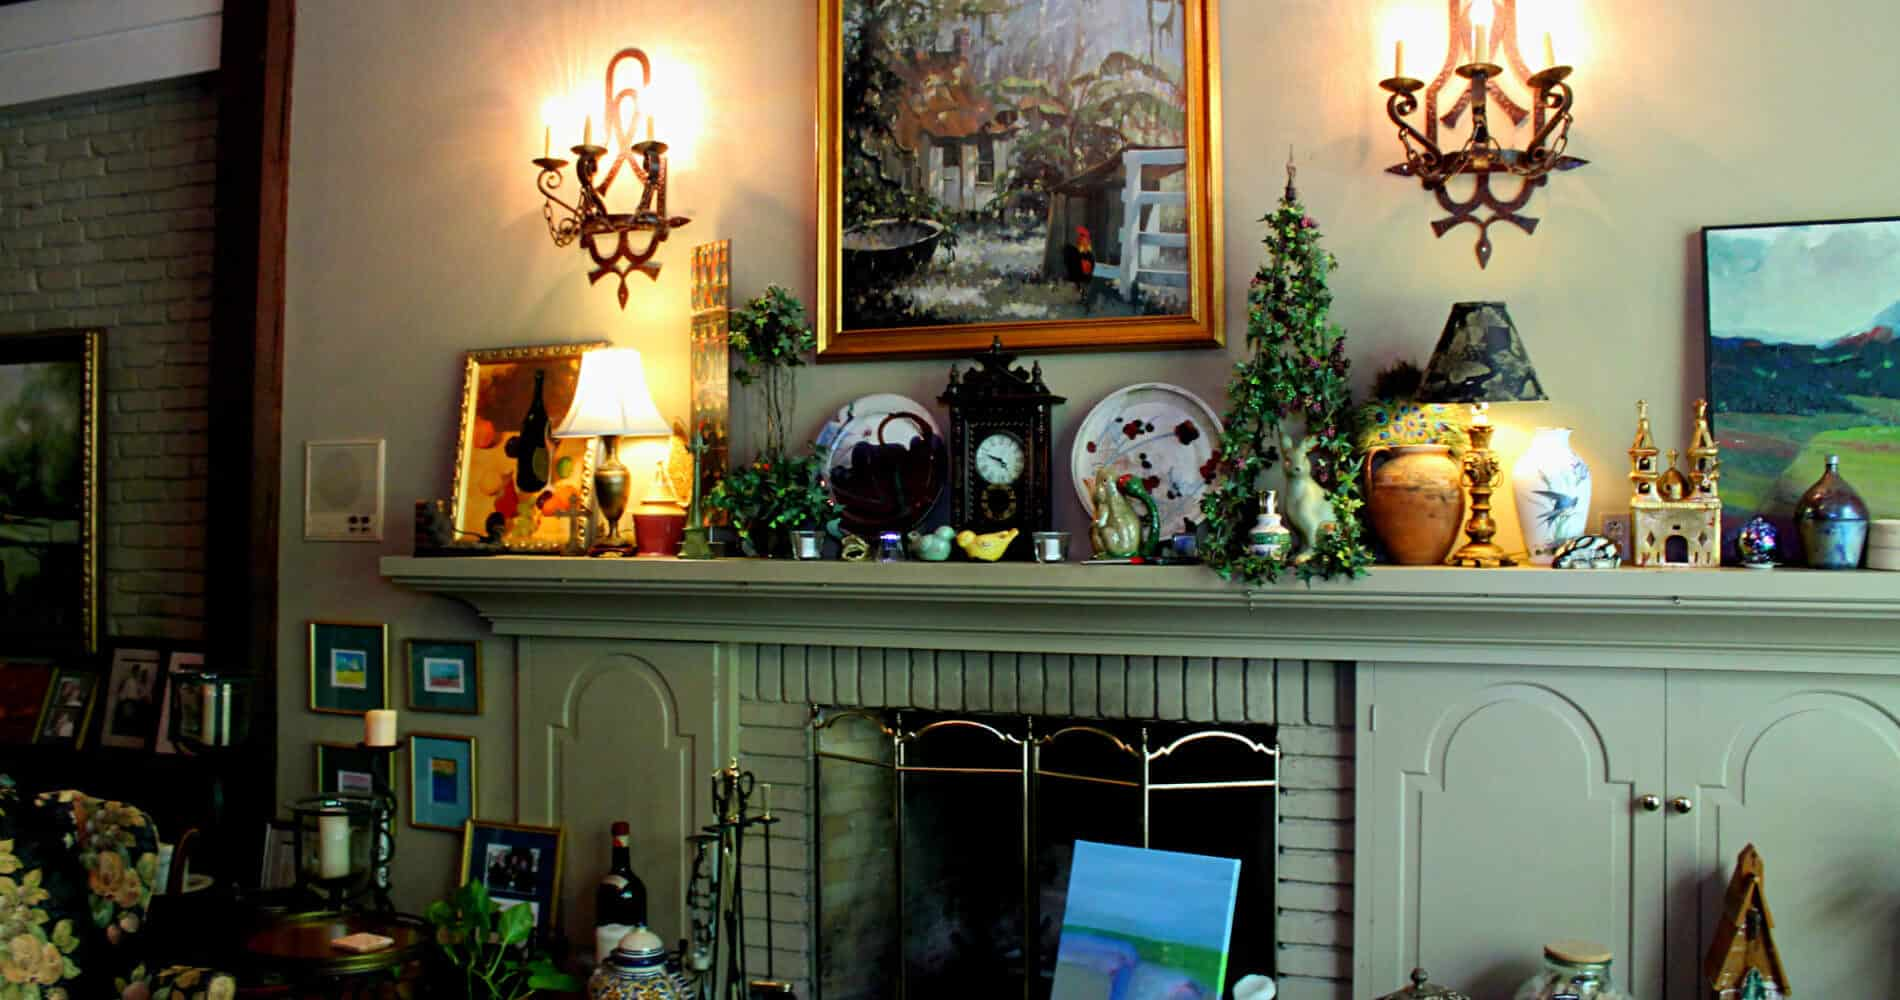 White fireplace with clock and many works of art and painting of Louisiana cabin above fireplace.